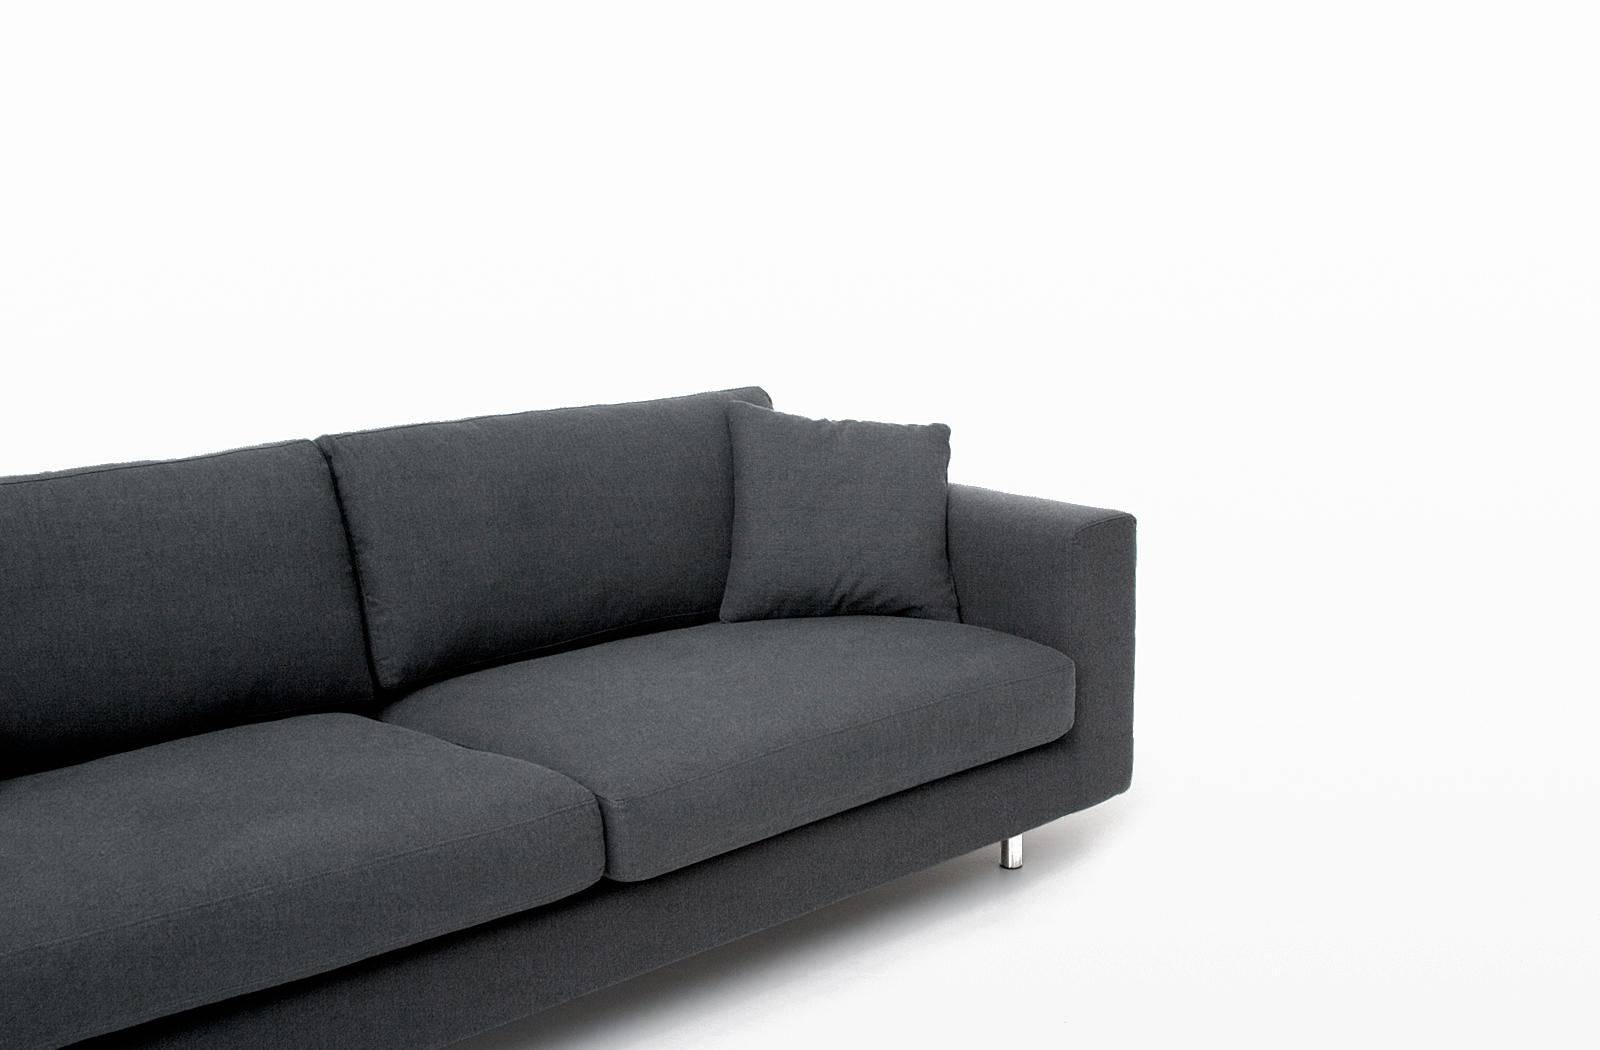 Contemporary Sofa / Fabric / 2-Seater / Black - Wide Arm - Bensen intended for Bensen Sofas (Image 5 of 15)